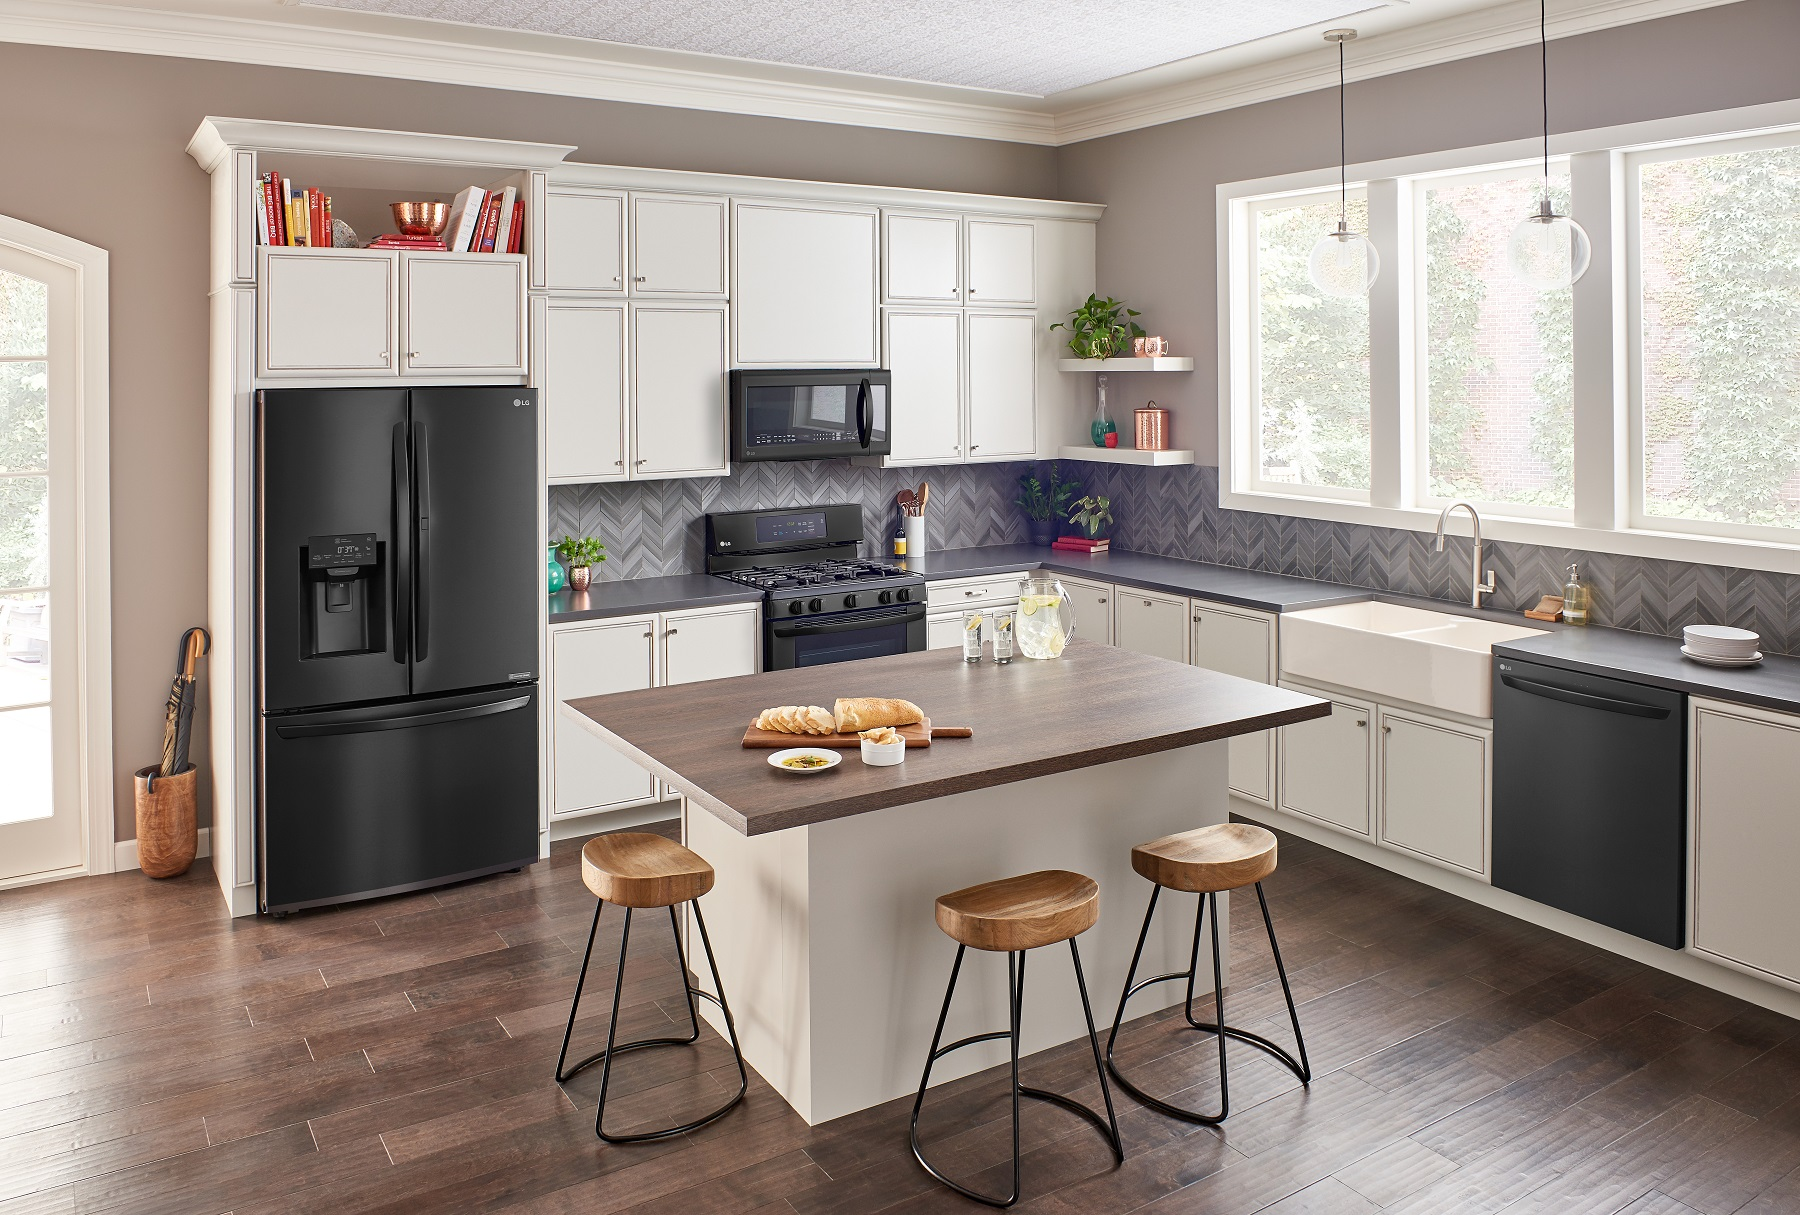 LG Kitchen and Laundry Appliances